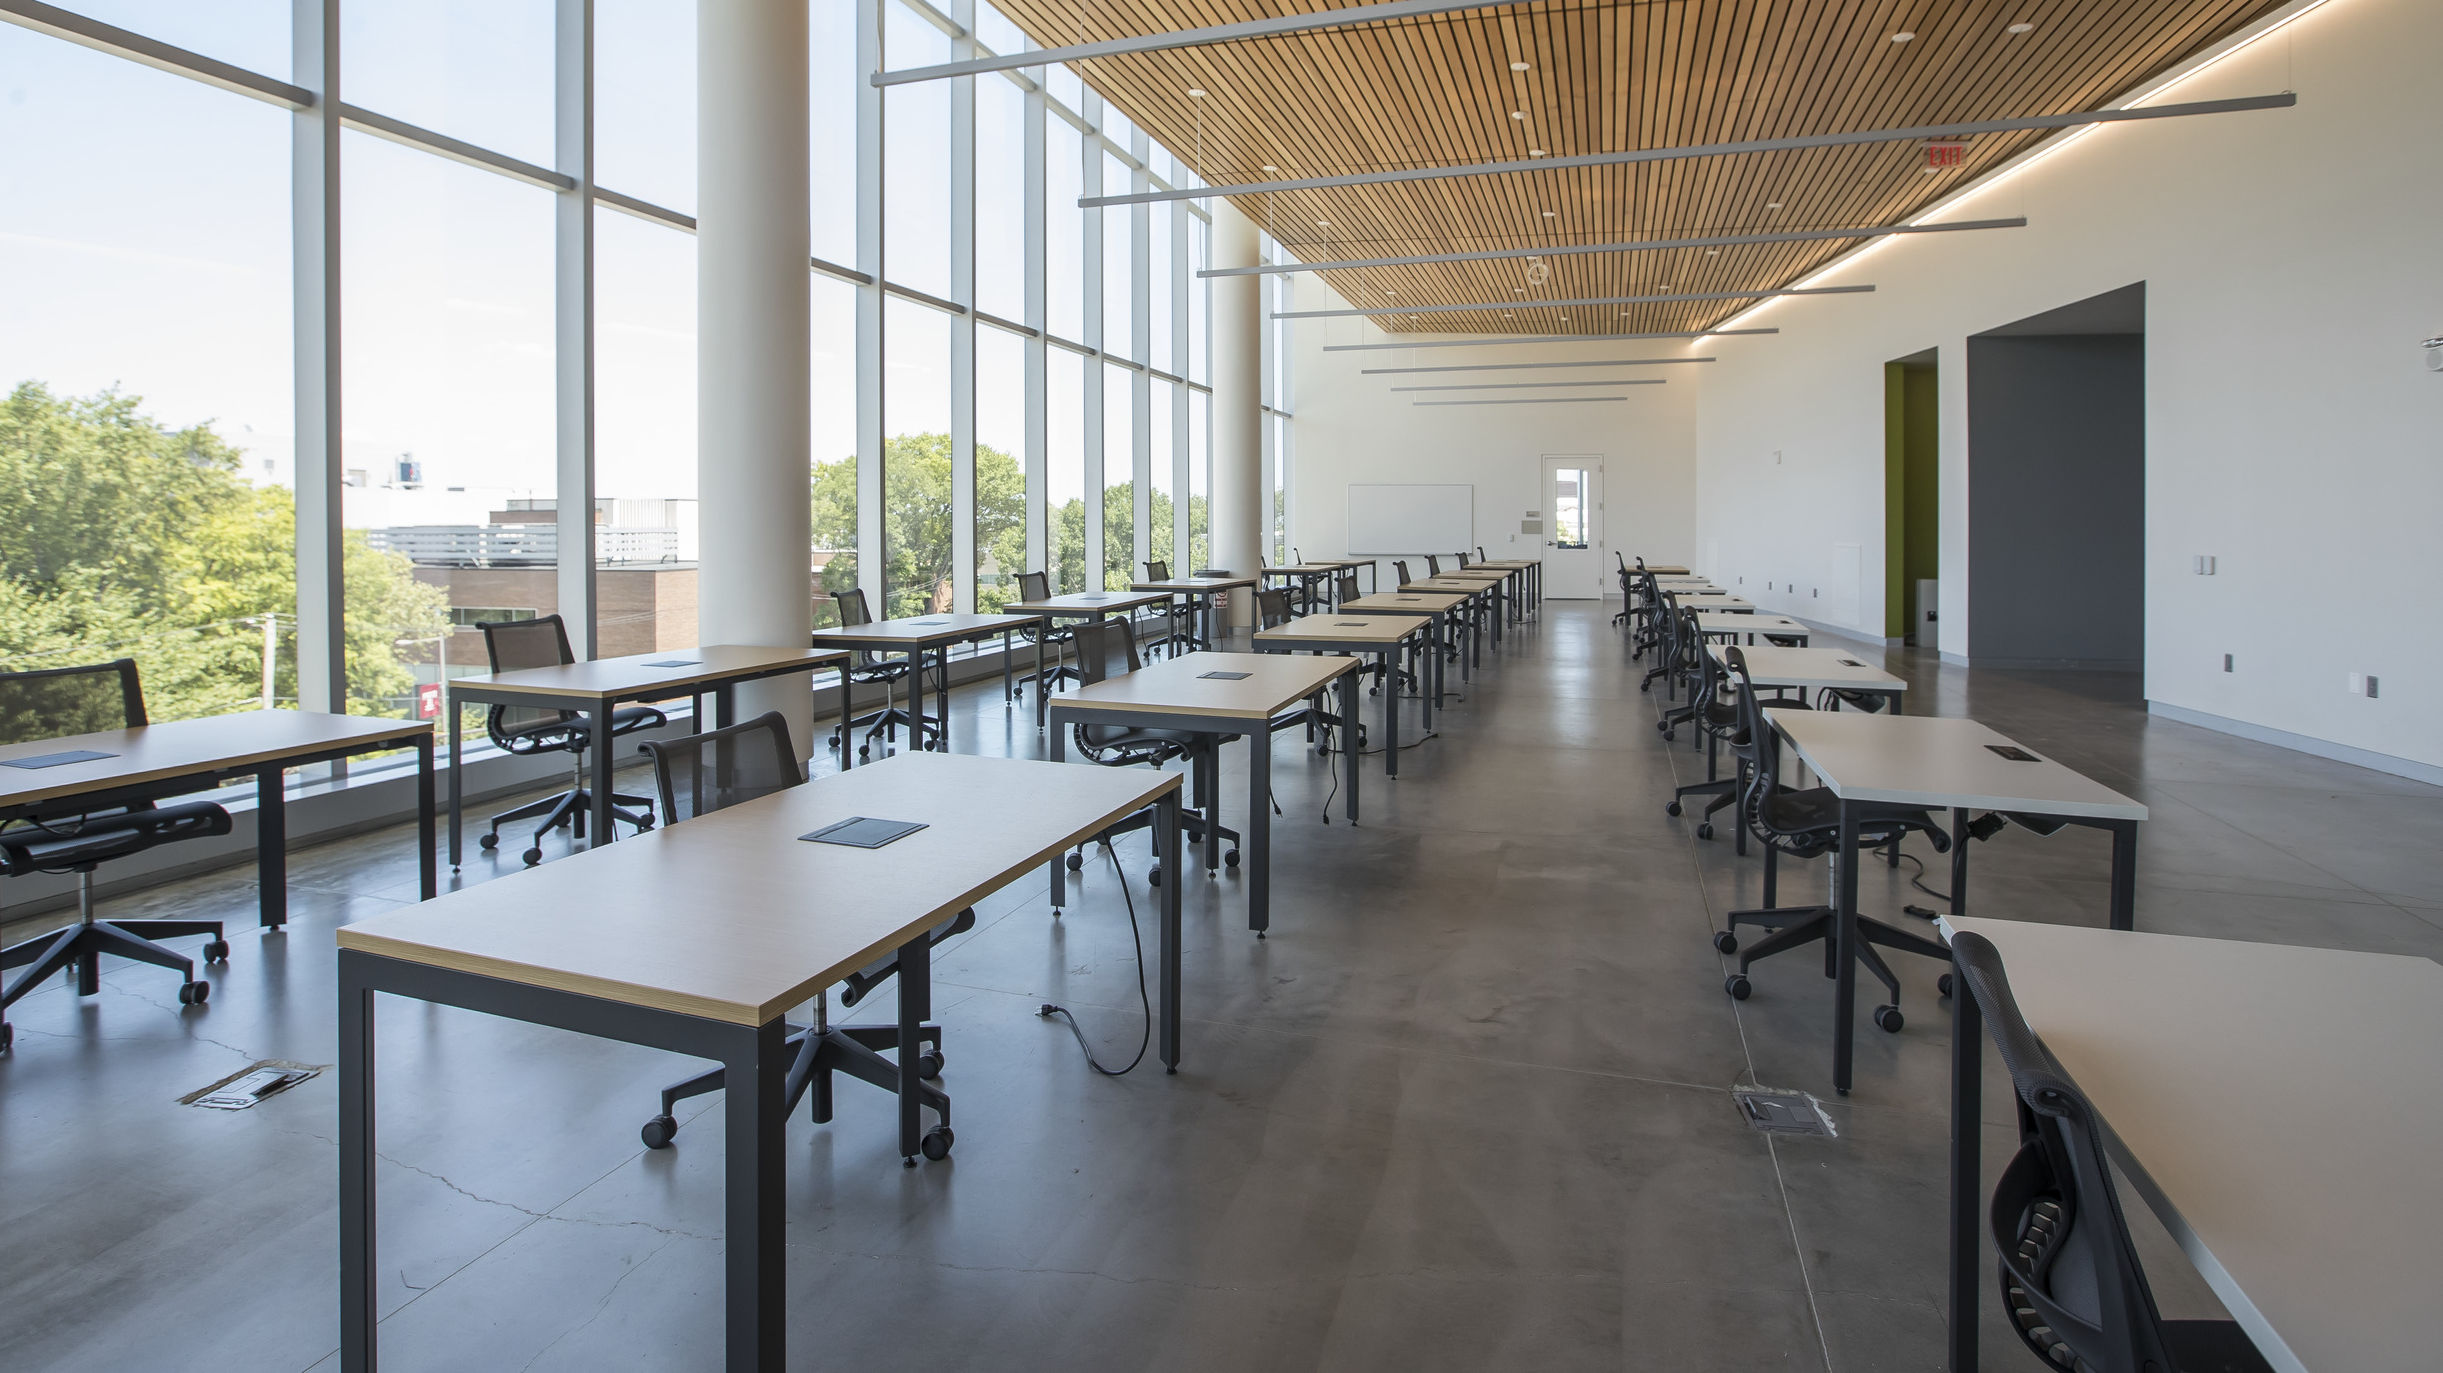 A classroom in Charles Library set up for physically distanced learning